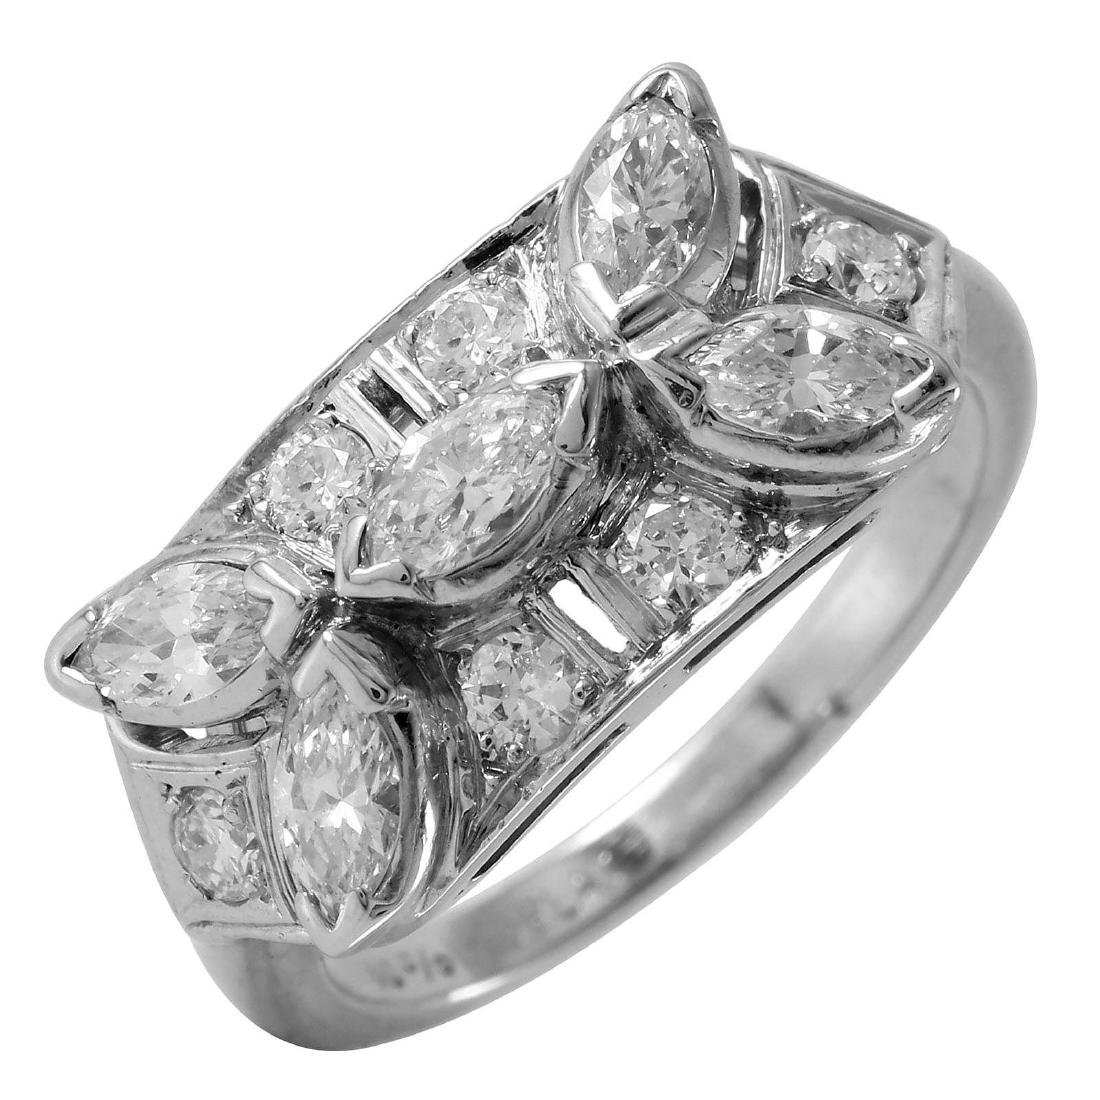 Platinum Vintage Marquise Diamond Cocktail Ring